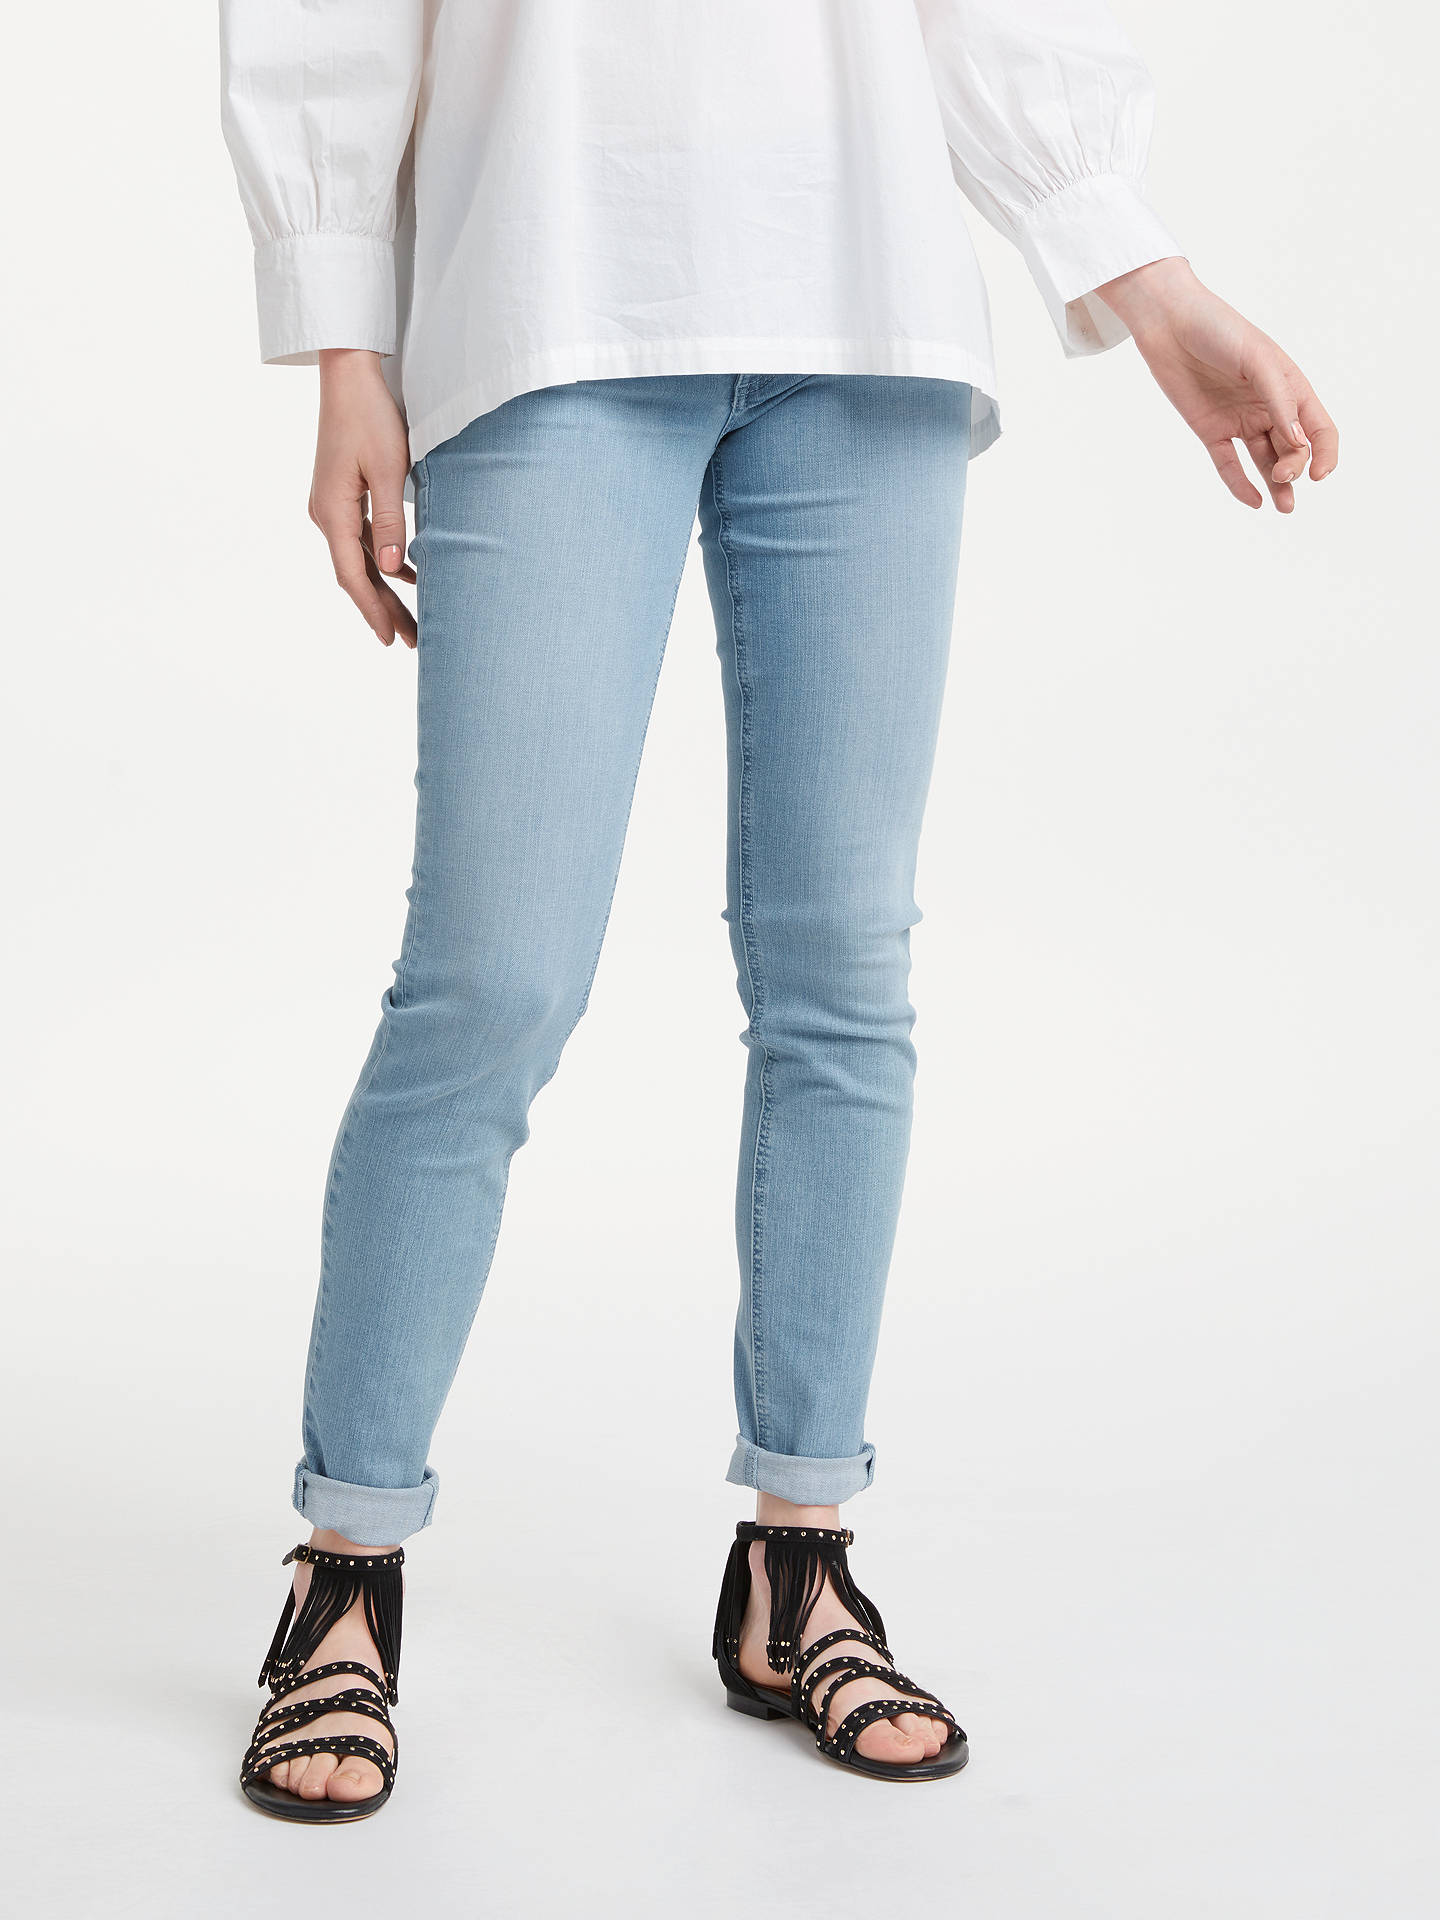 BuyAND/OR Abbot Kinney Sunkissed Skinny Jeans, Blue, 28 Online at johnlewis.com